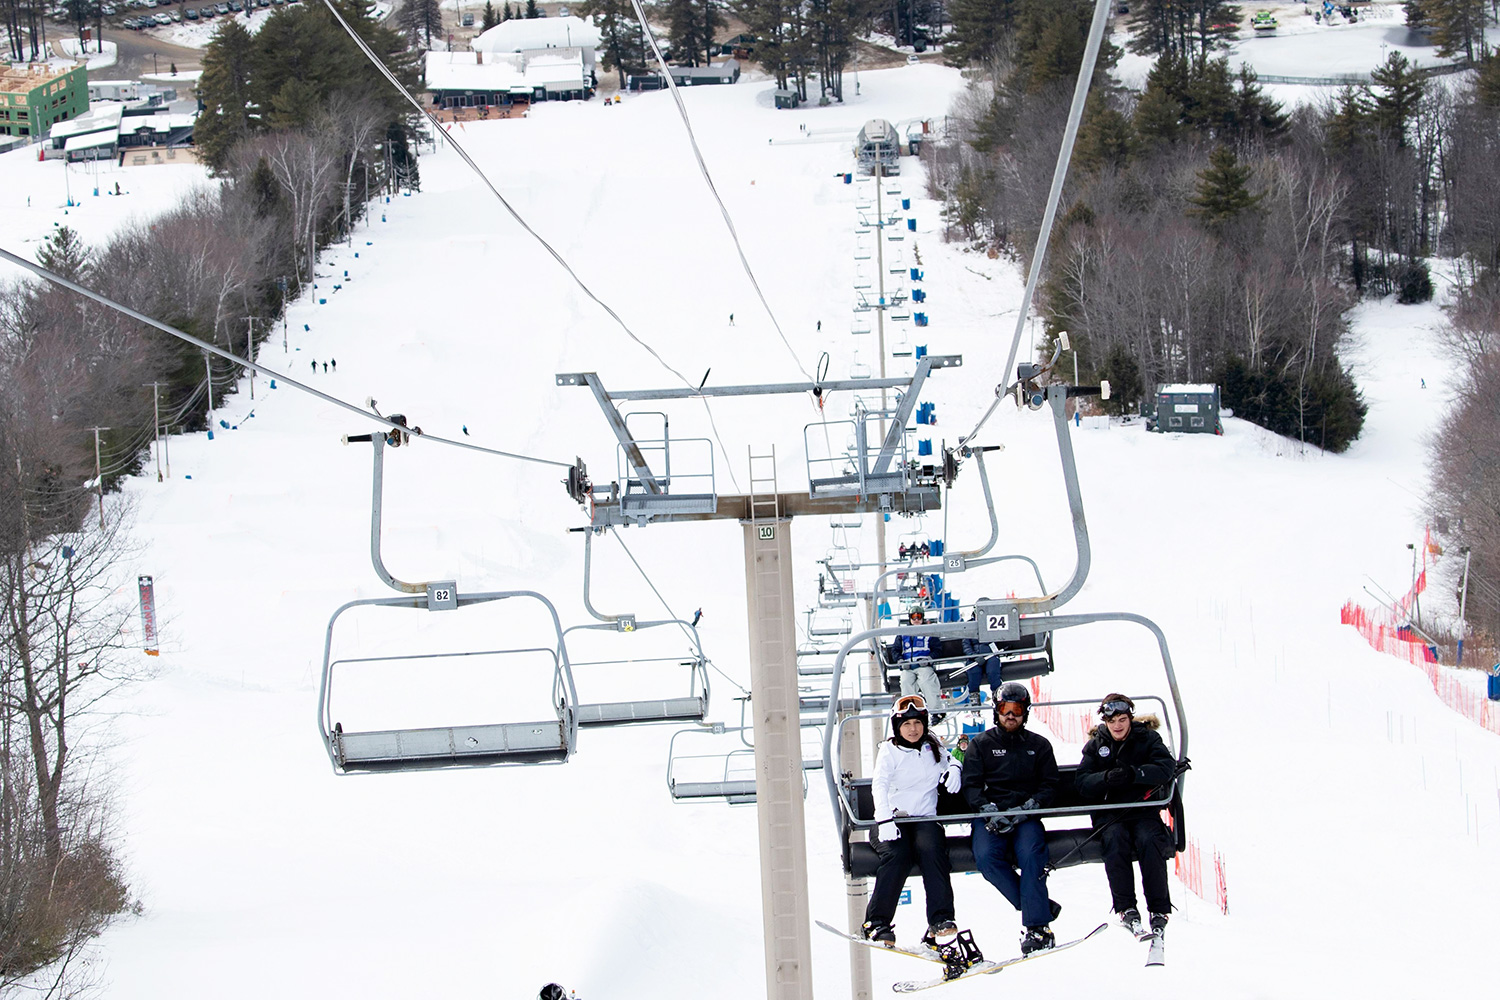 Cranmore Mountain Resort, in North Conway, N.H